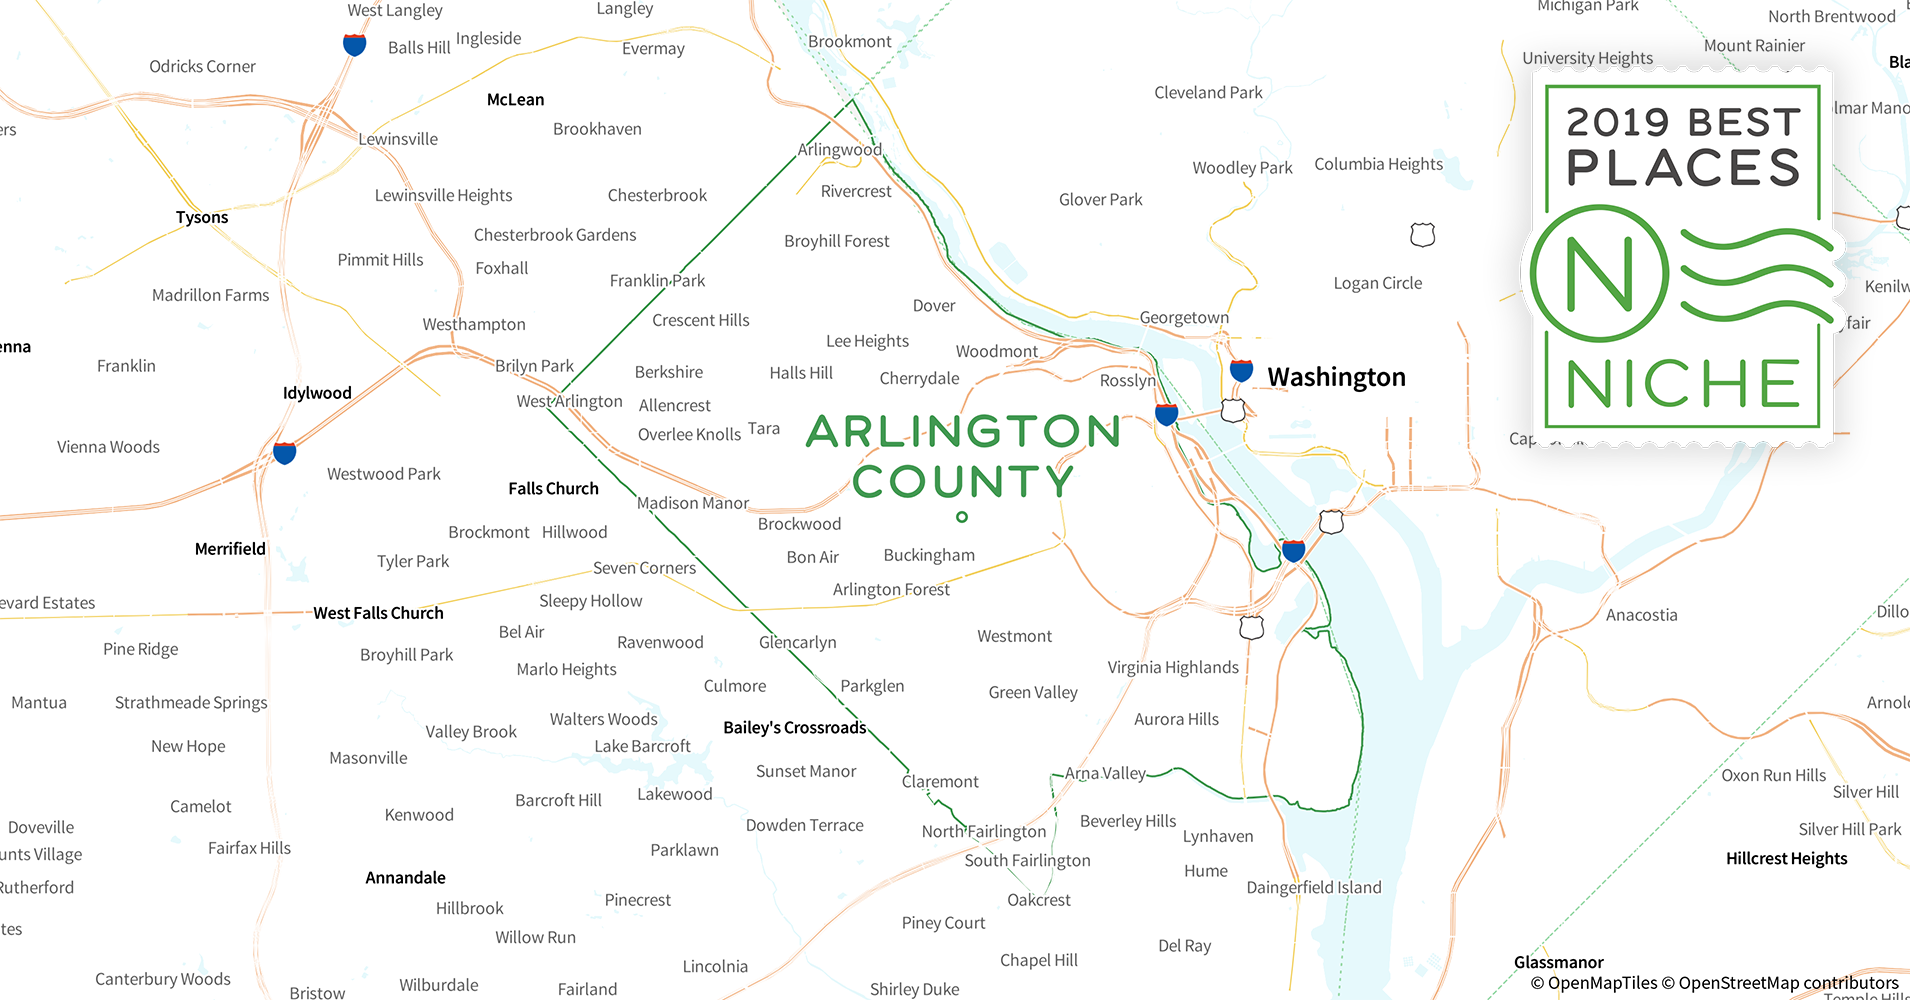 2019 Best Places to Live in Arlington County, VA - Niche